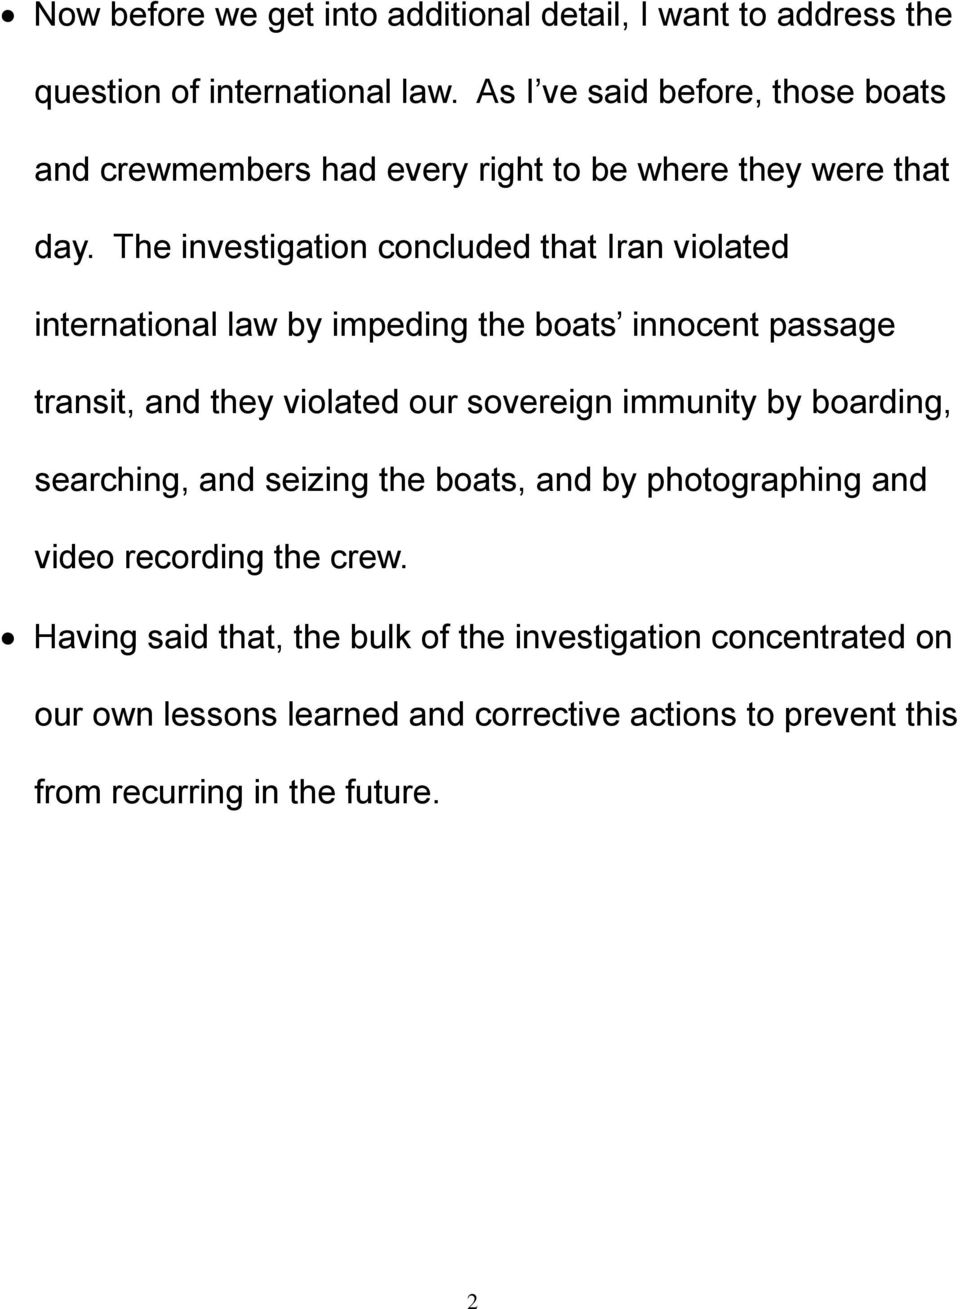 The investigation concluded that Iran violated international law by impeding the boats innocent passage transit, and they violated our sovereign